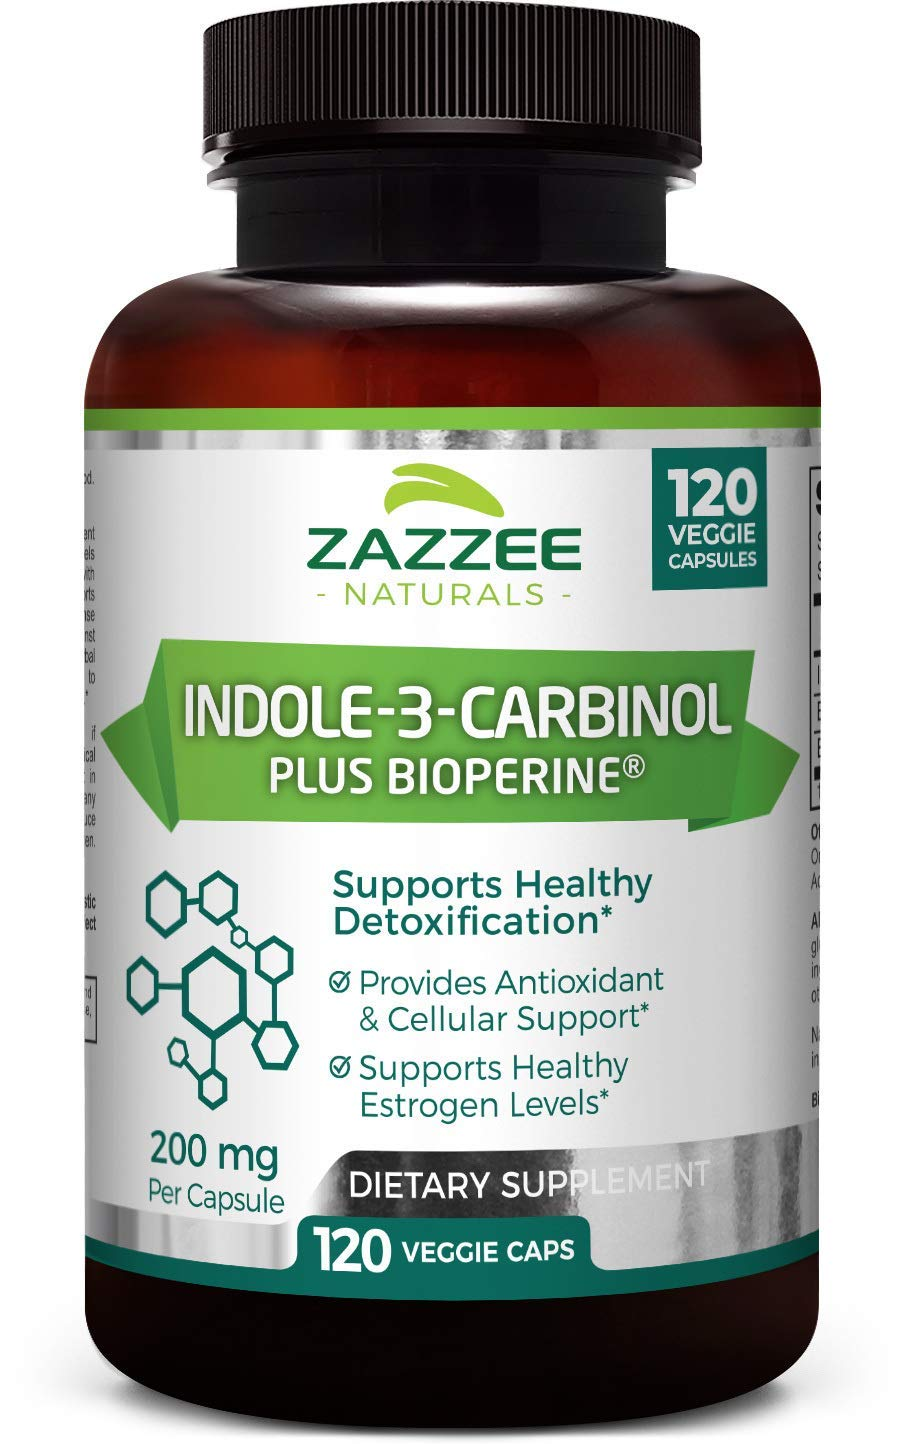 Zazzee Indole-3-Carbinol I3C , 120 Veggie Caps, 4 Month Supply, 200 mg per Capsule, Plus 5mg BioPerine for Enhanced Absorption, Vegan, Non-GMO and All-Natural